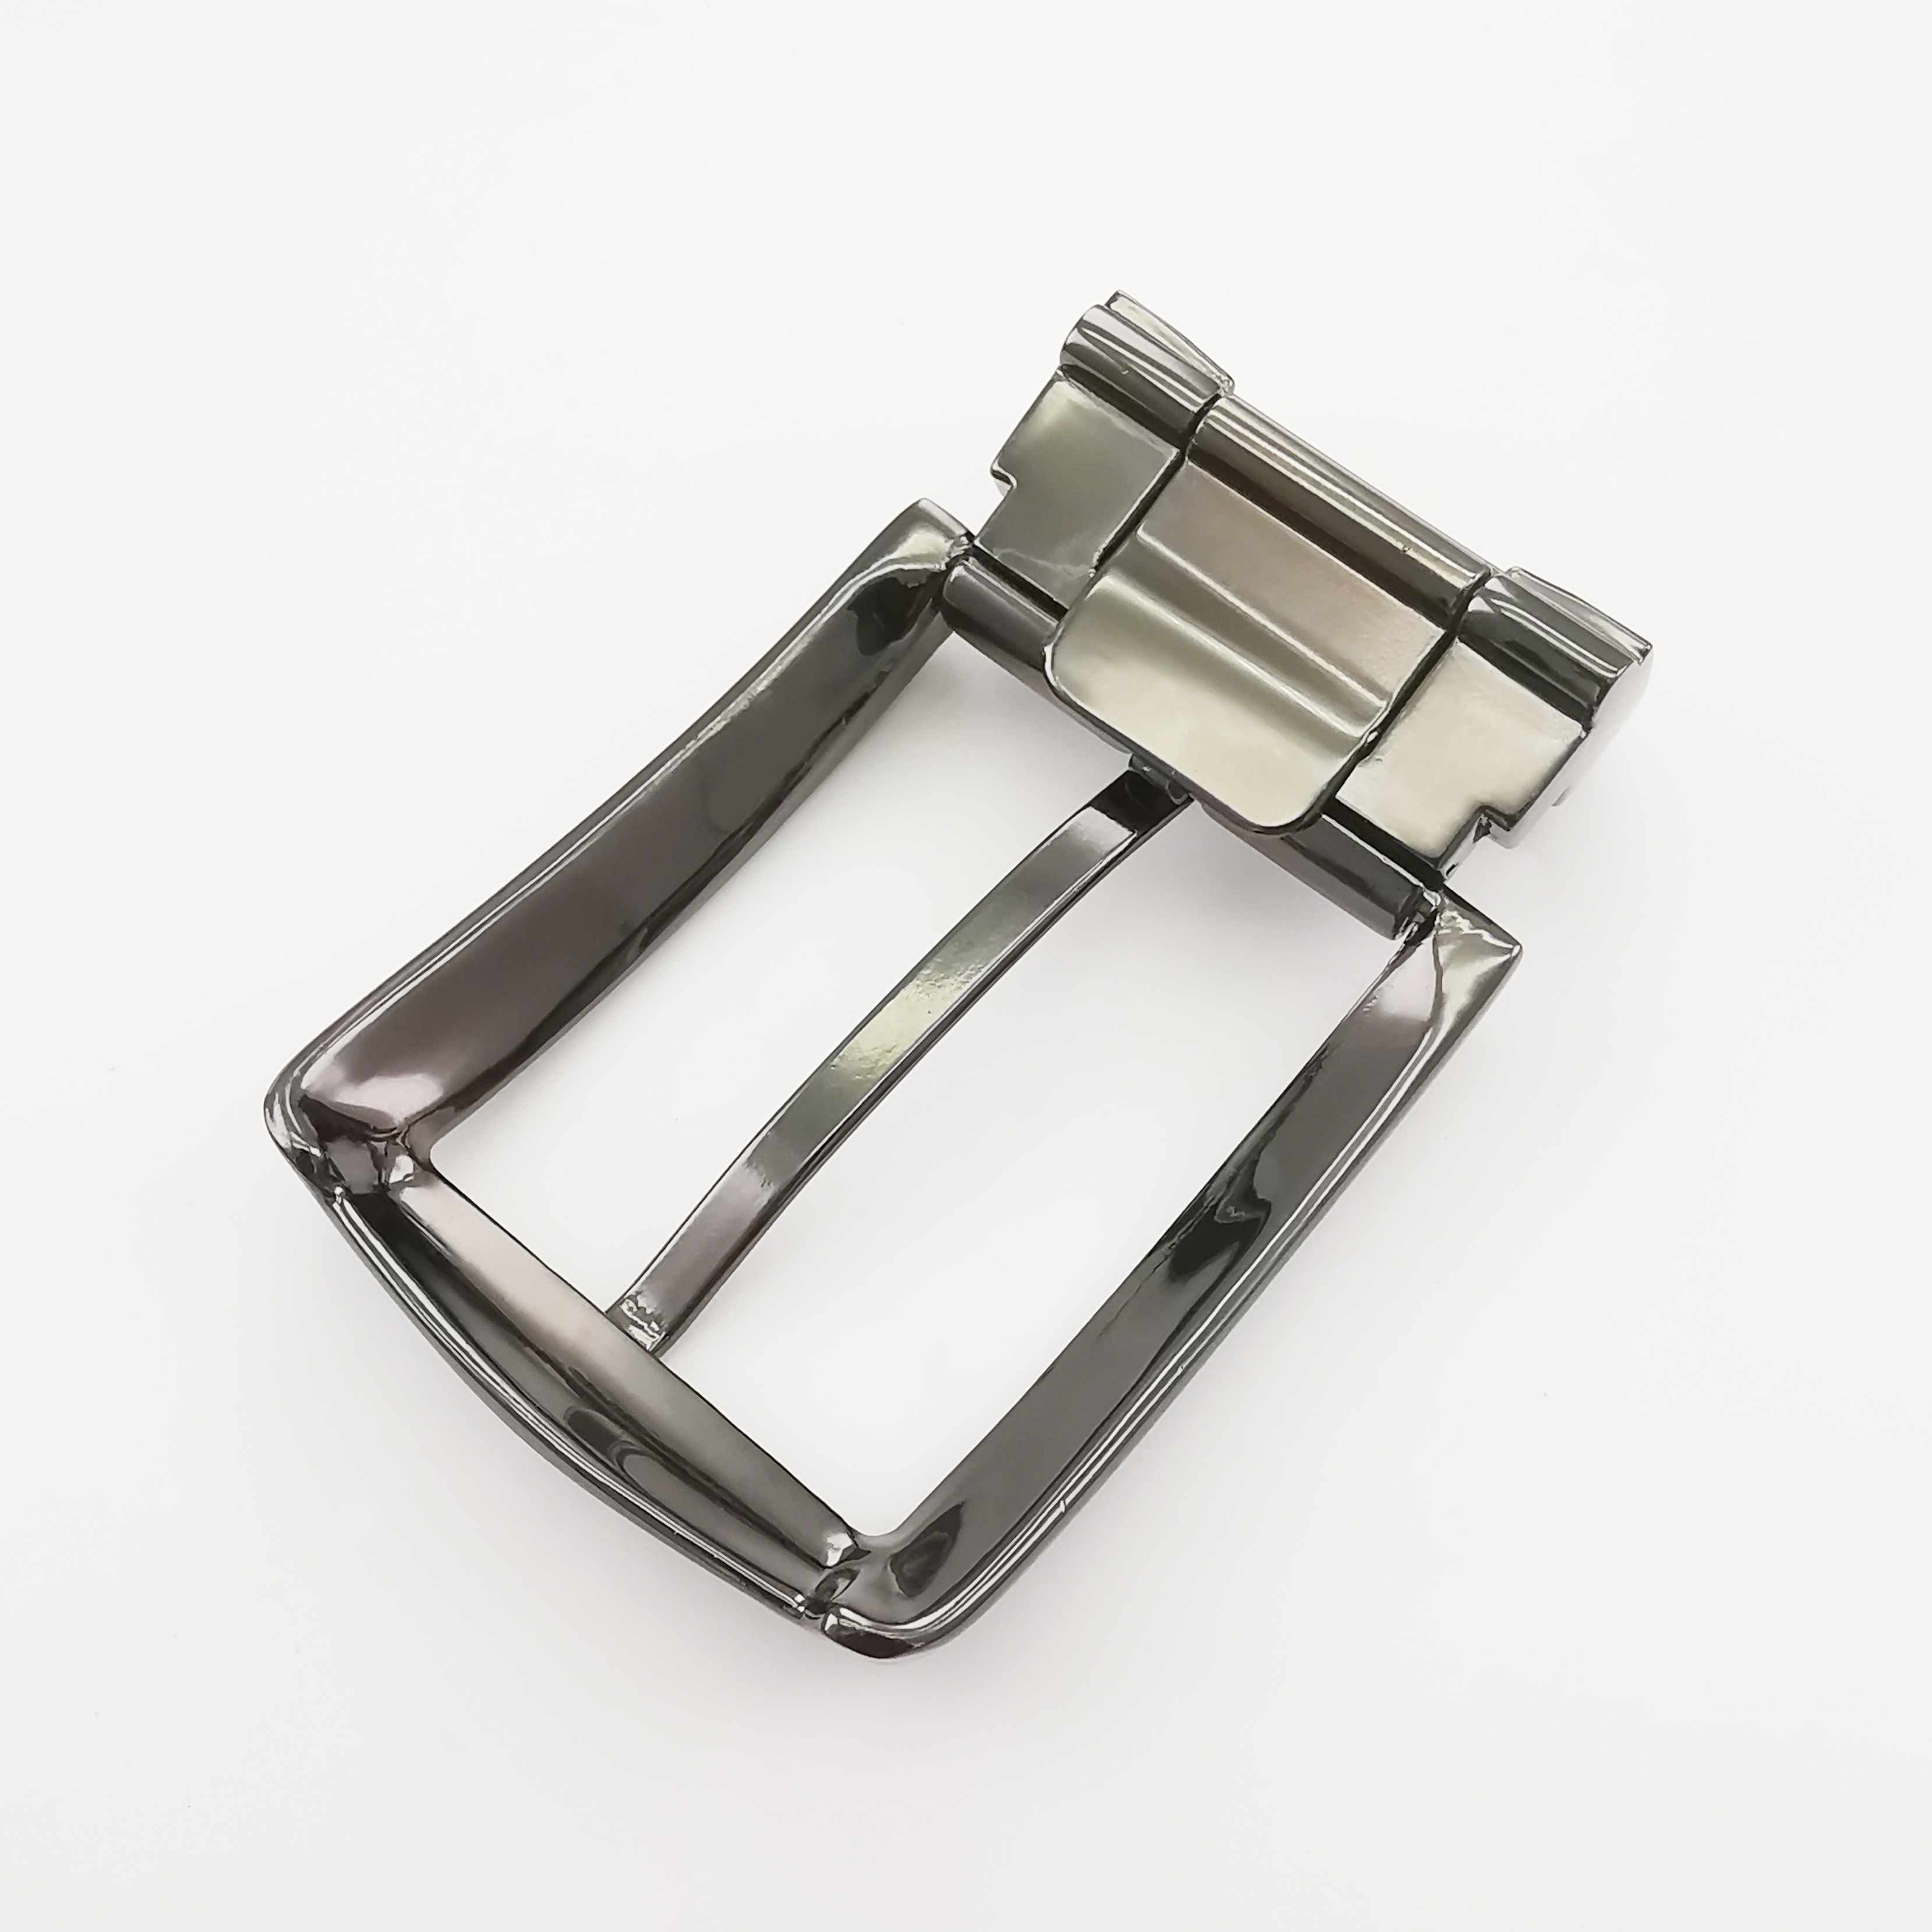 Newest Promotional New Fashion Wholesale Colorful New Trendy metal belt buckle